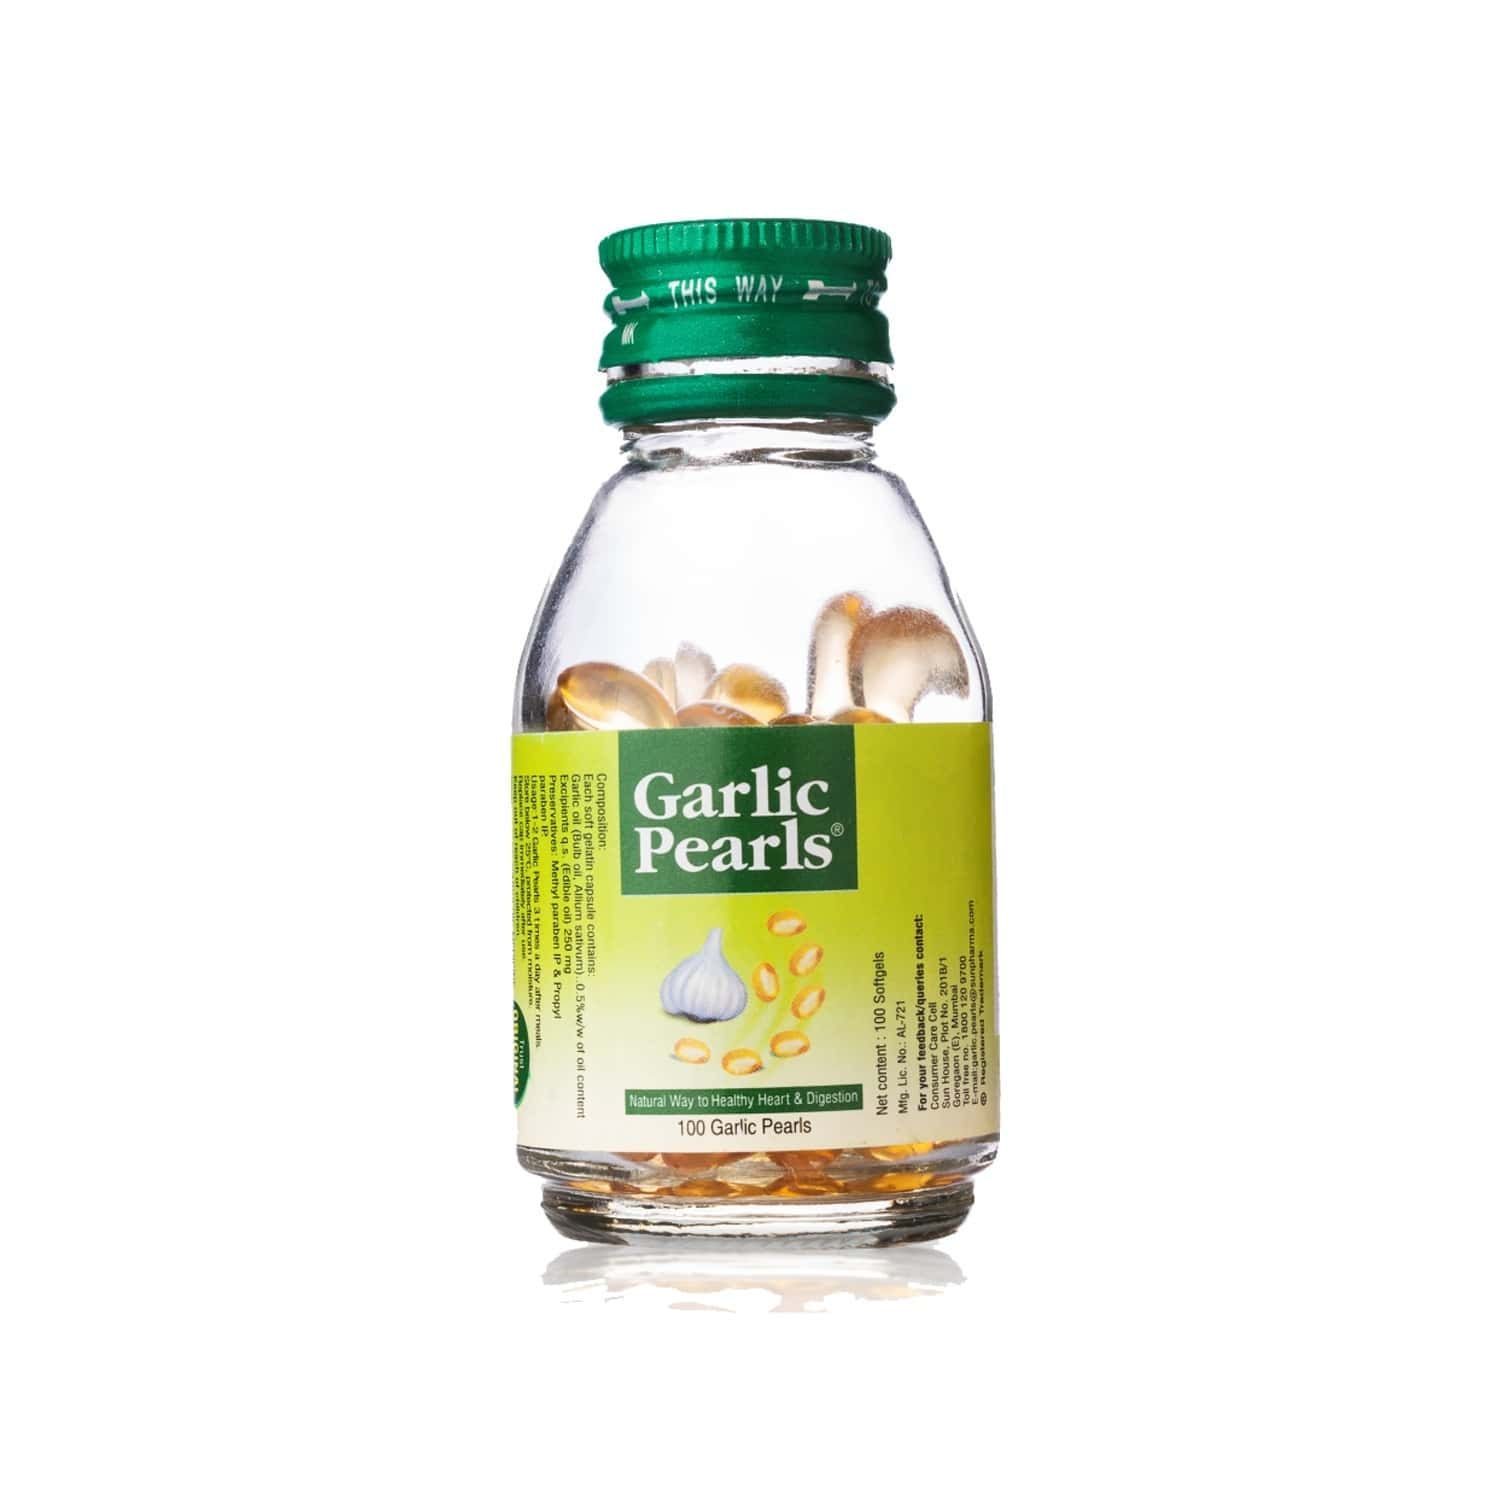 Garlic Pearls  Healthy Heart & Digestion Capsules  Bottle Of 100